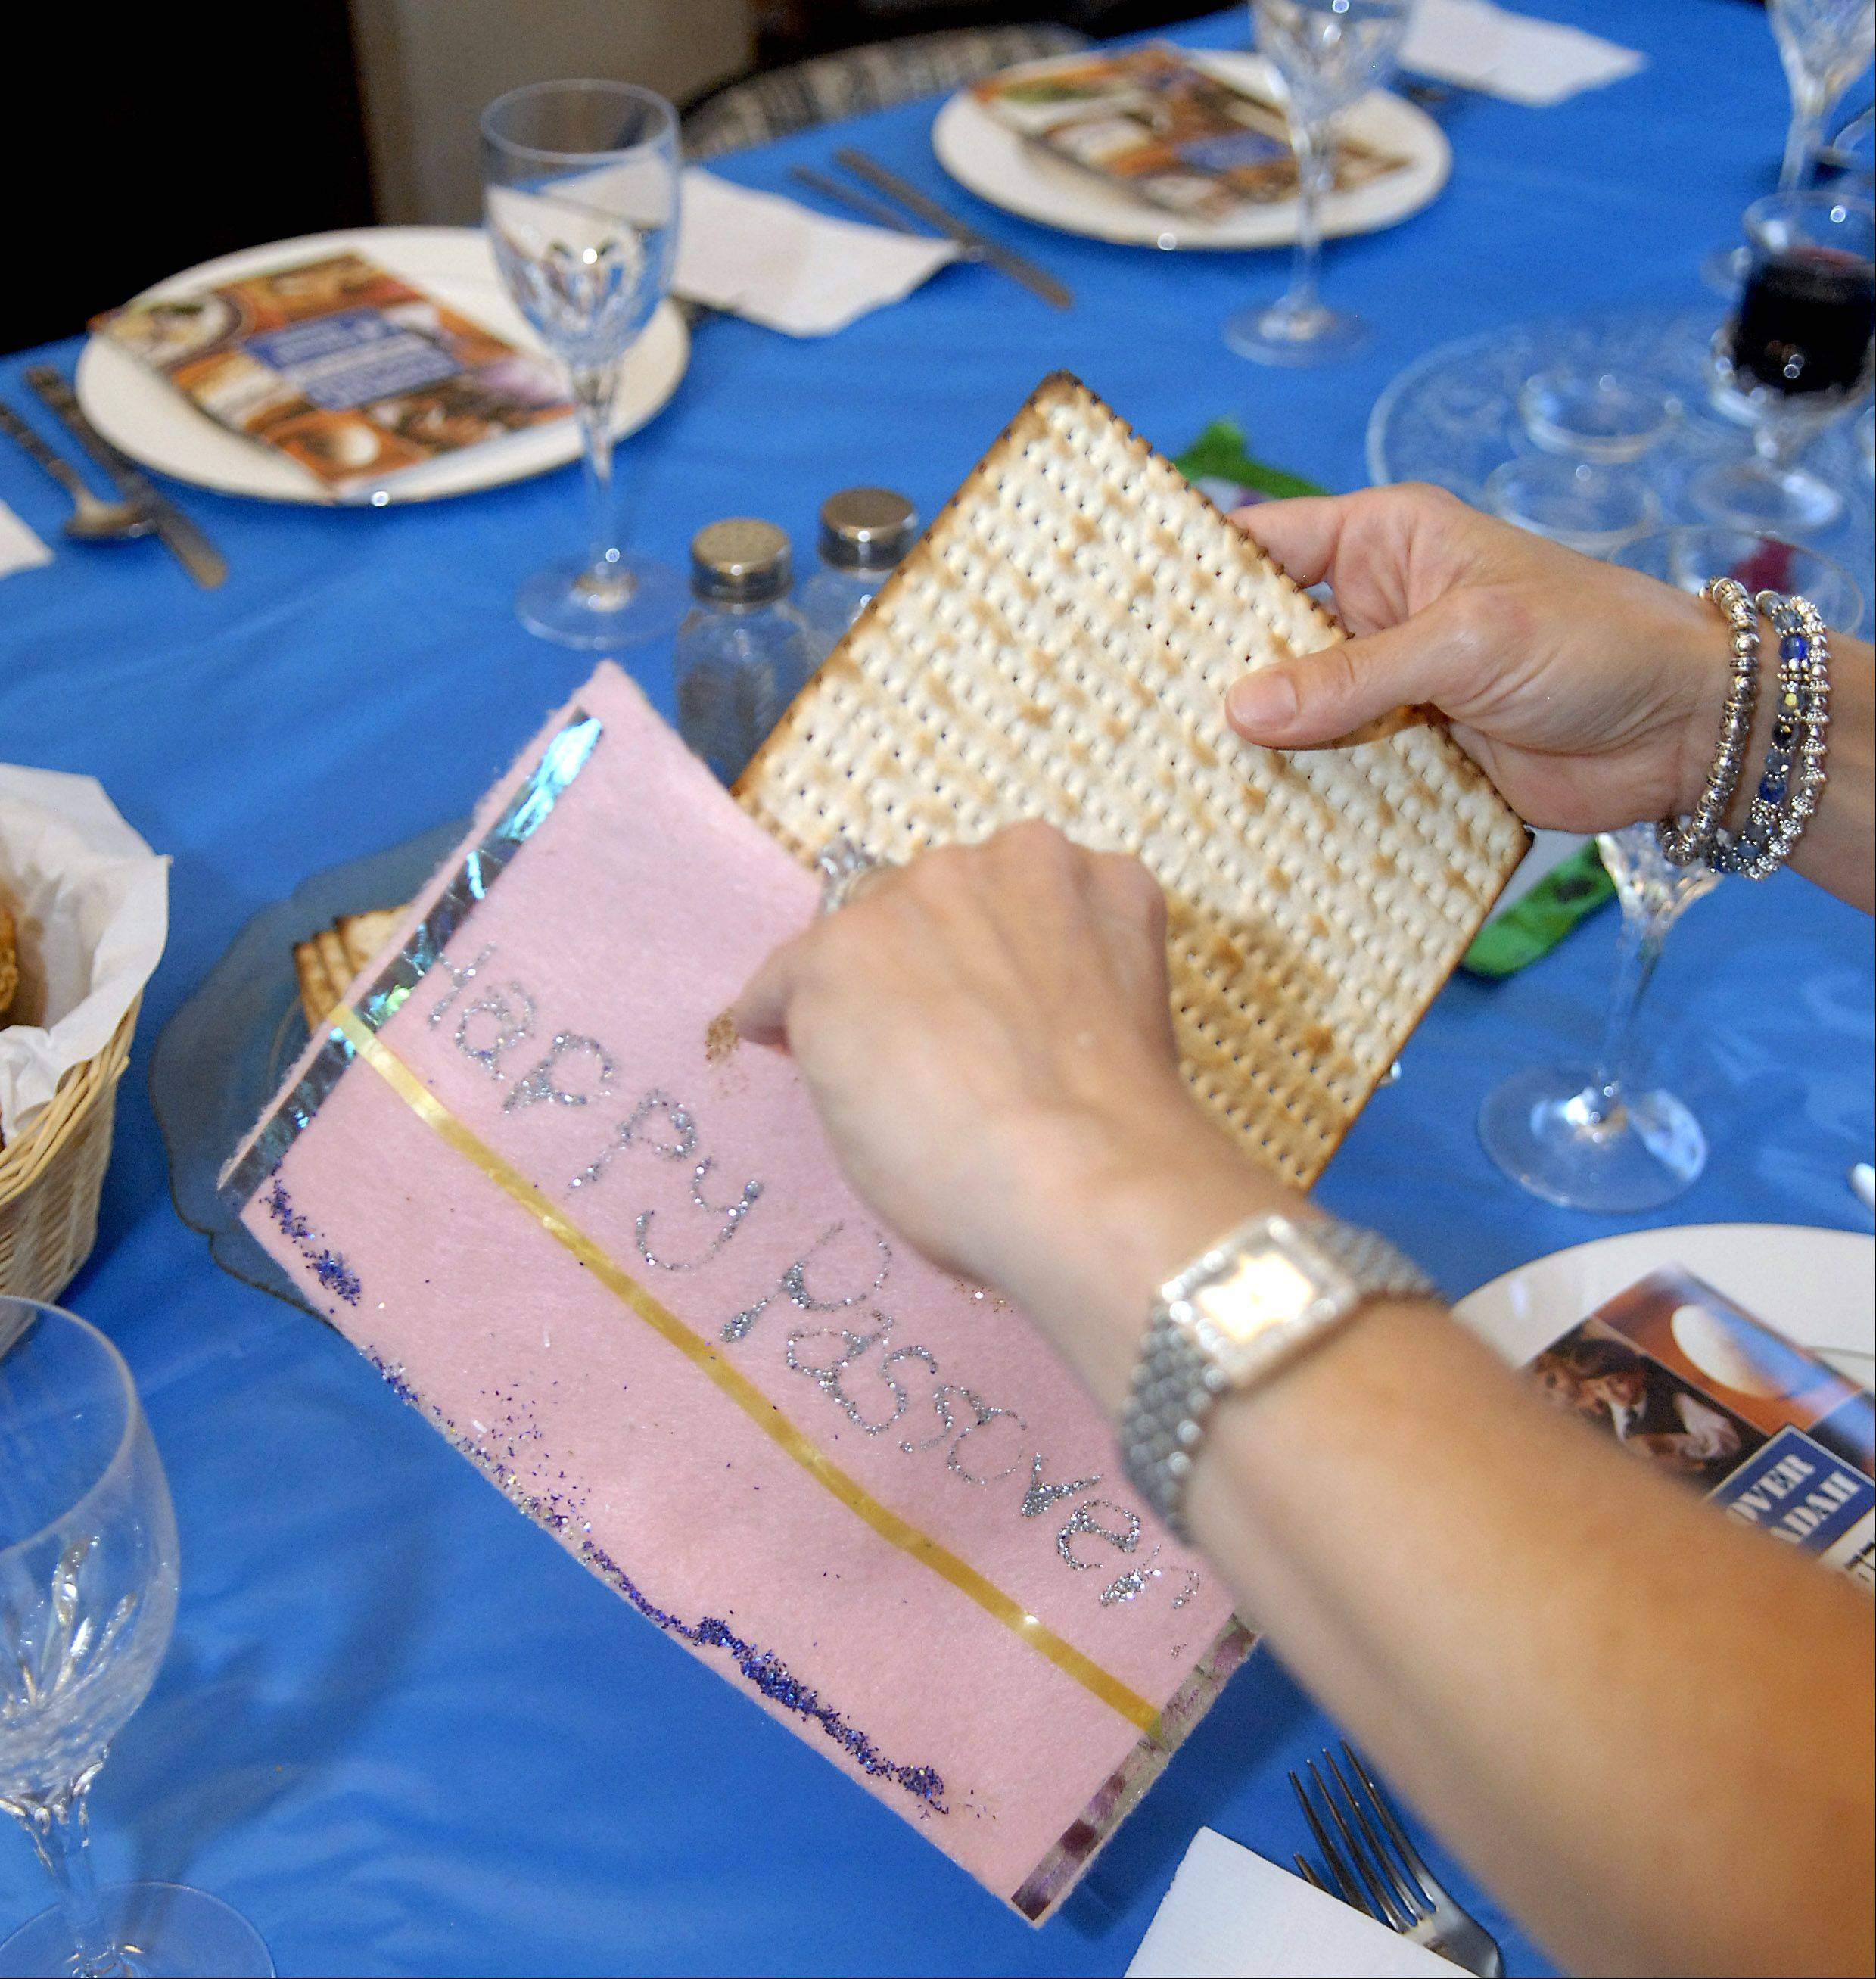 Barb Anderson hides a matzo cracker in a felt pouch made by her daughter, Sarah, 13.